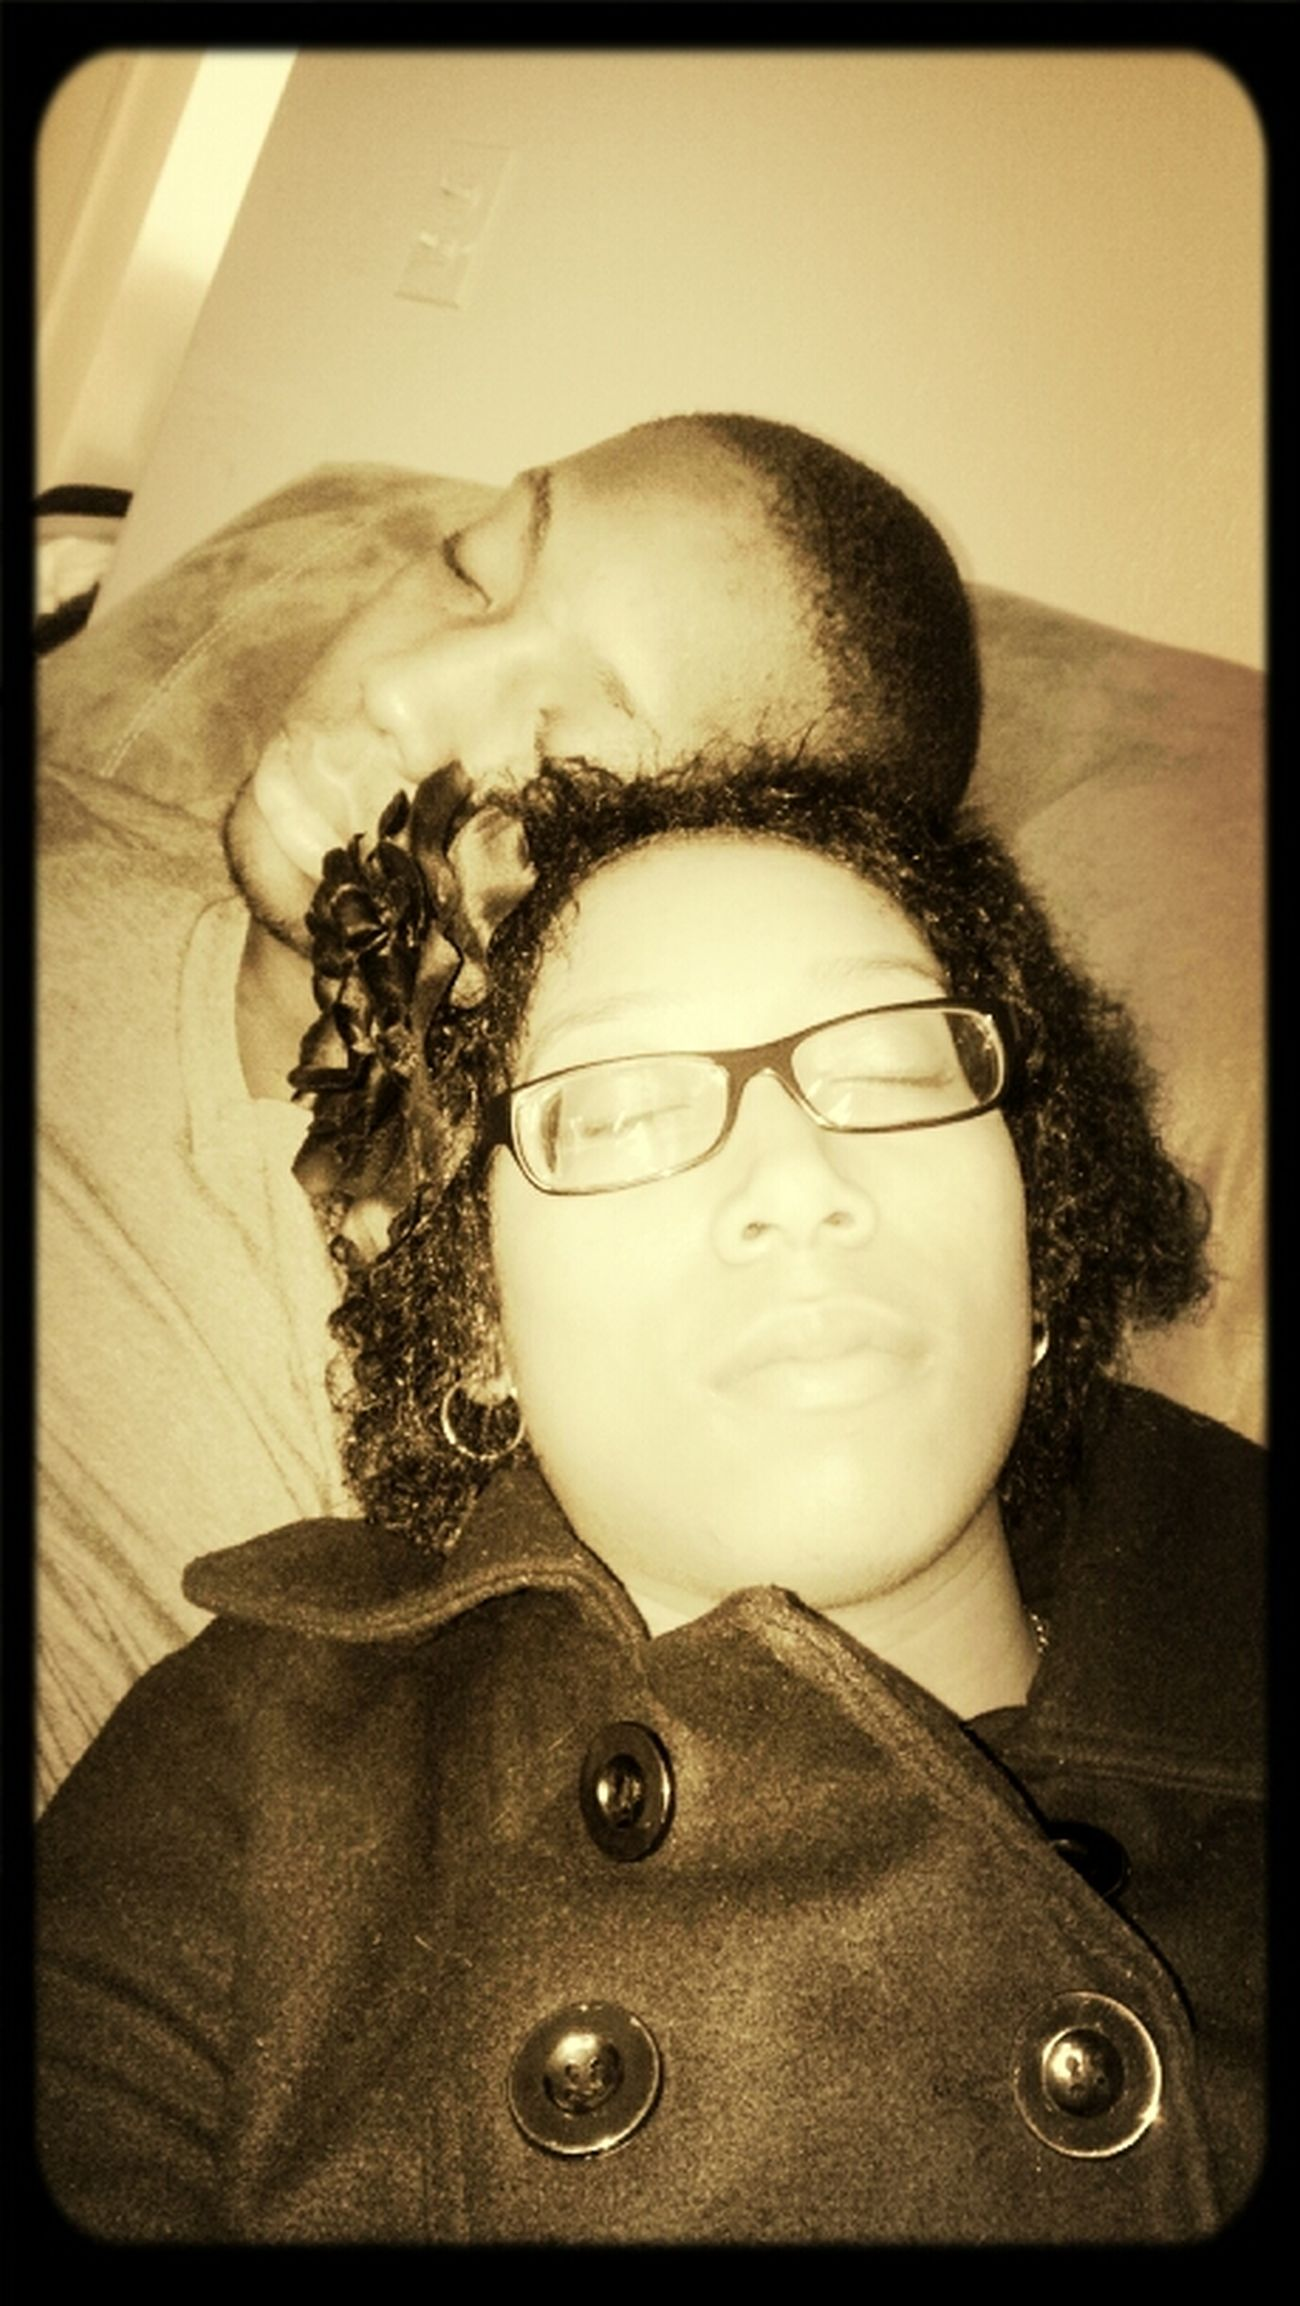 Me and my Mr. <3